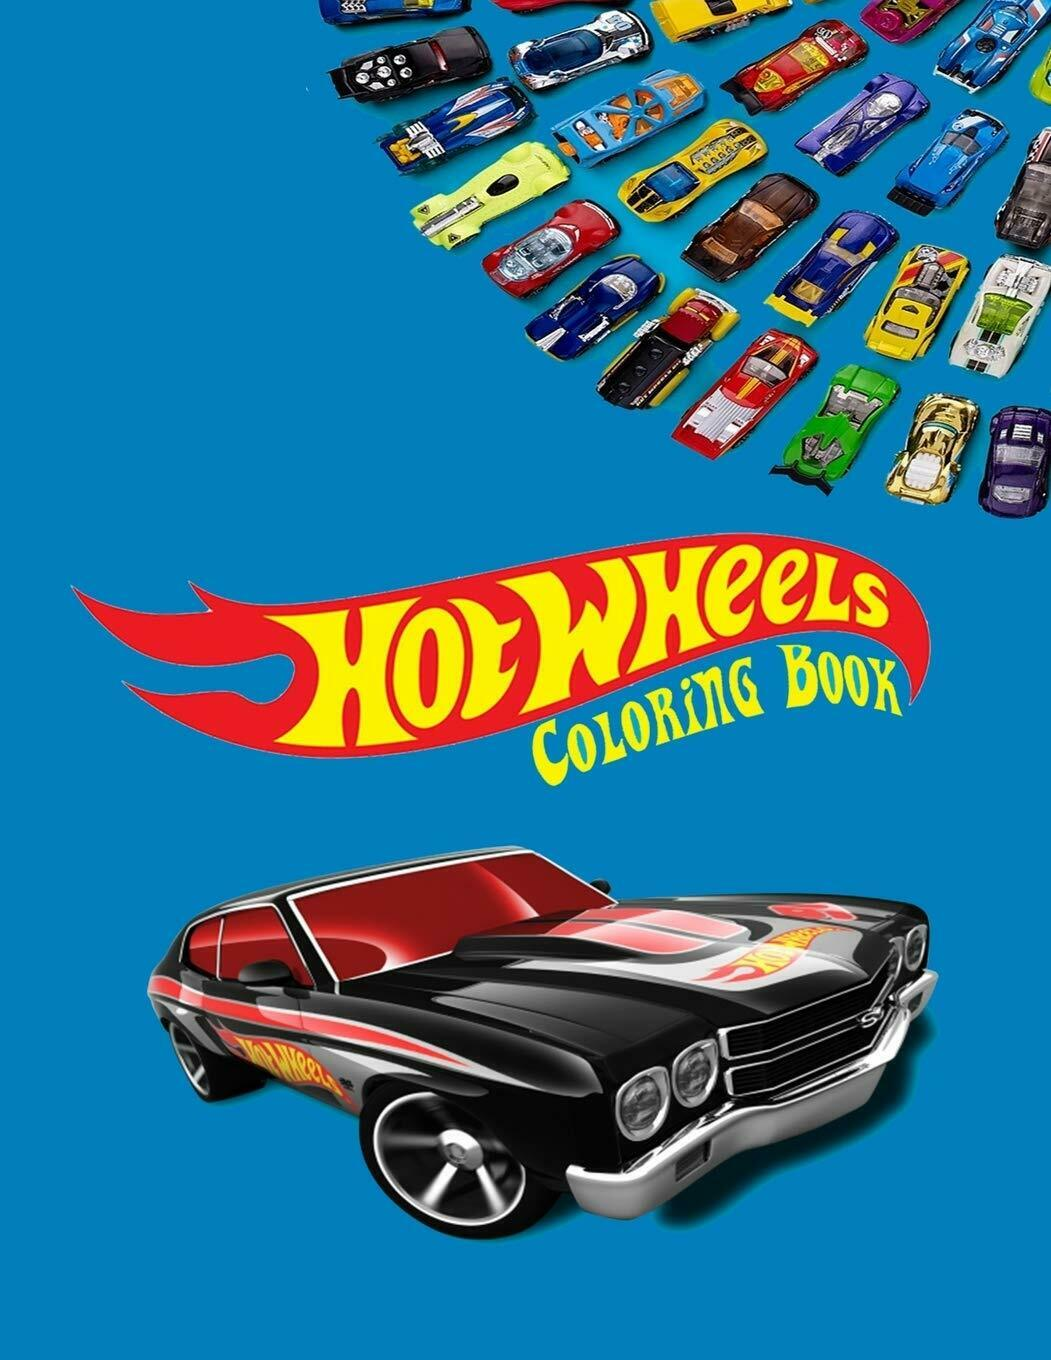 - Hot Wheels Coloring Book Coloring Book For Kids And Adults With